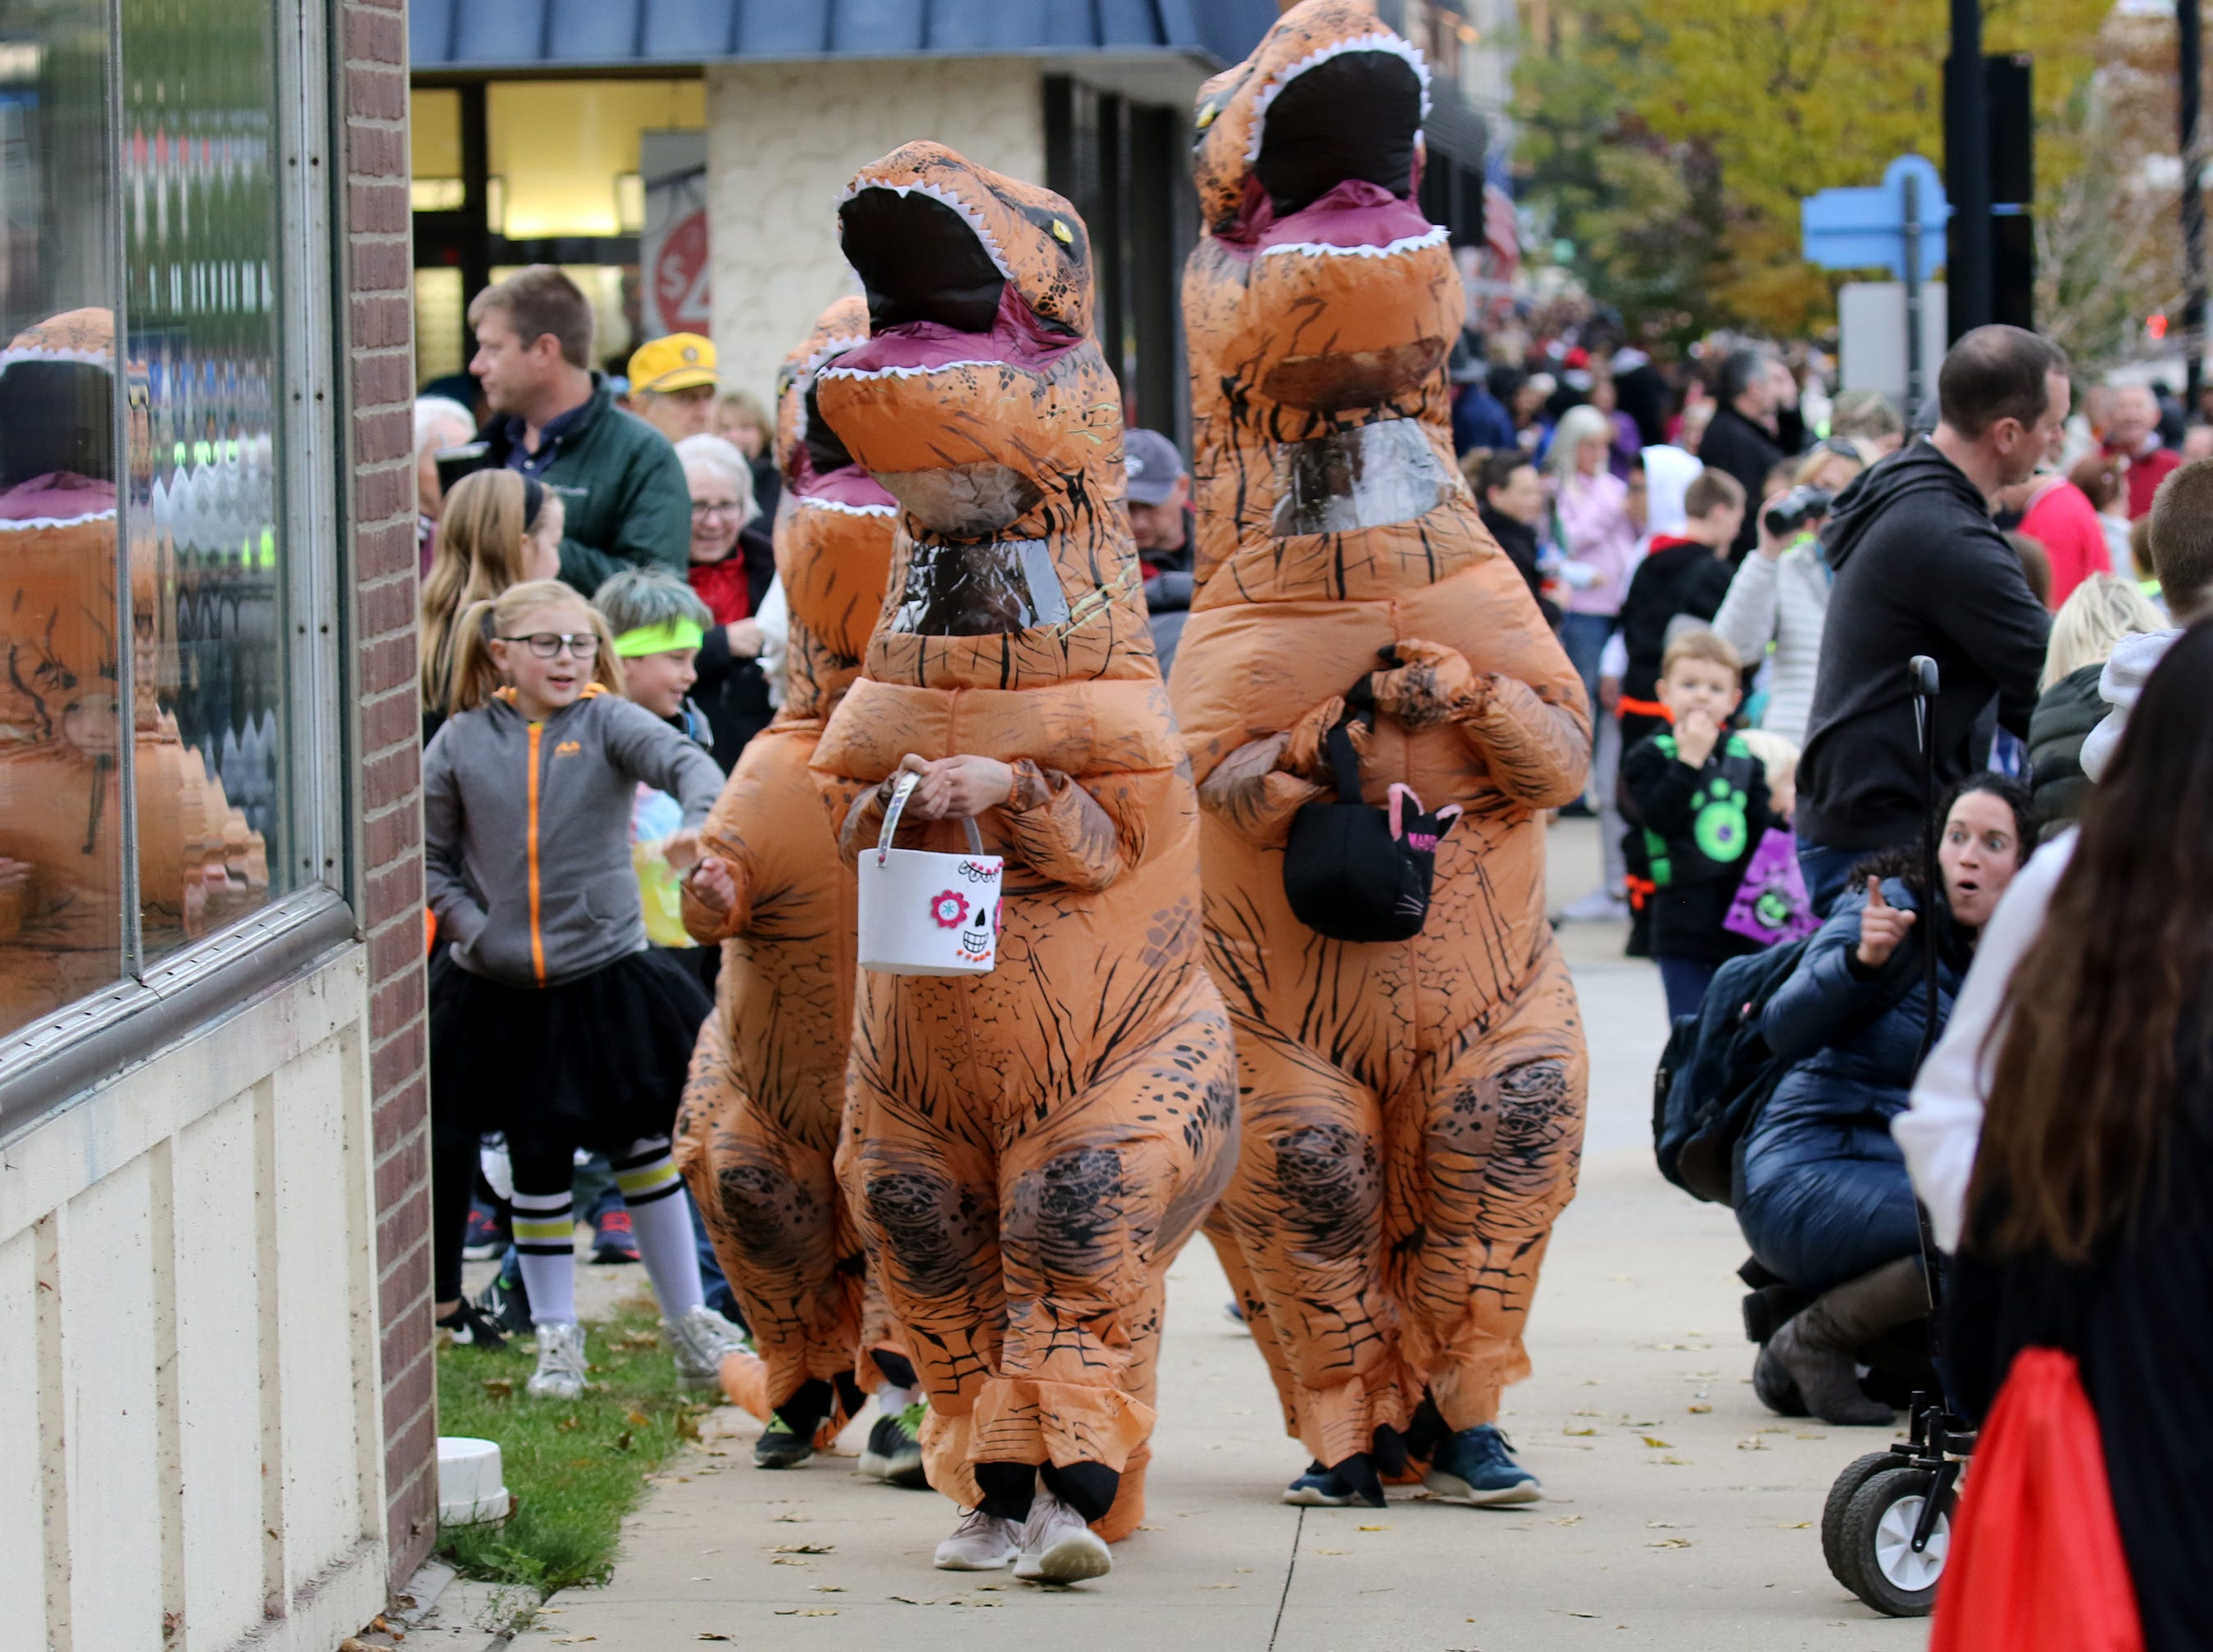 A trio of dinosaurs invade the downtown during the Oconomowoc Halloween Parade on Oct. 27 that followed several hours of Downtown Trick or Treating.